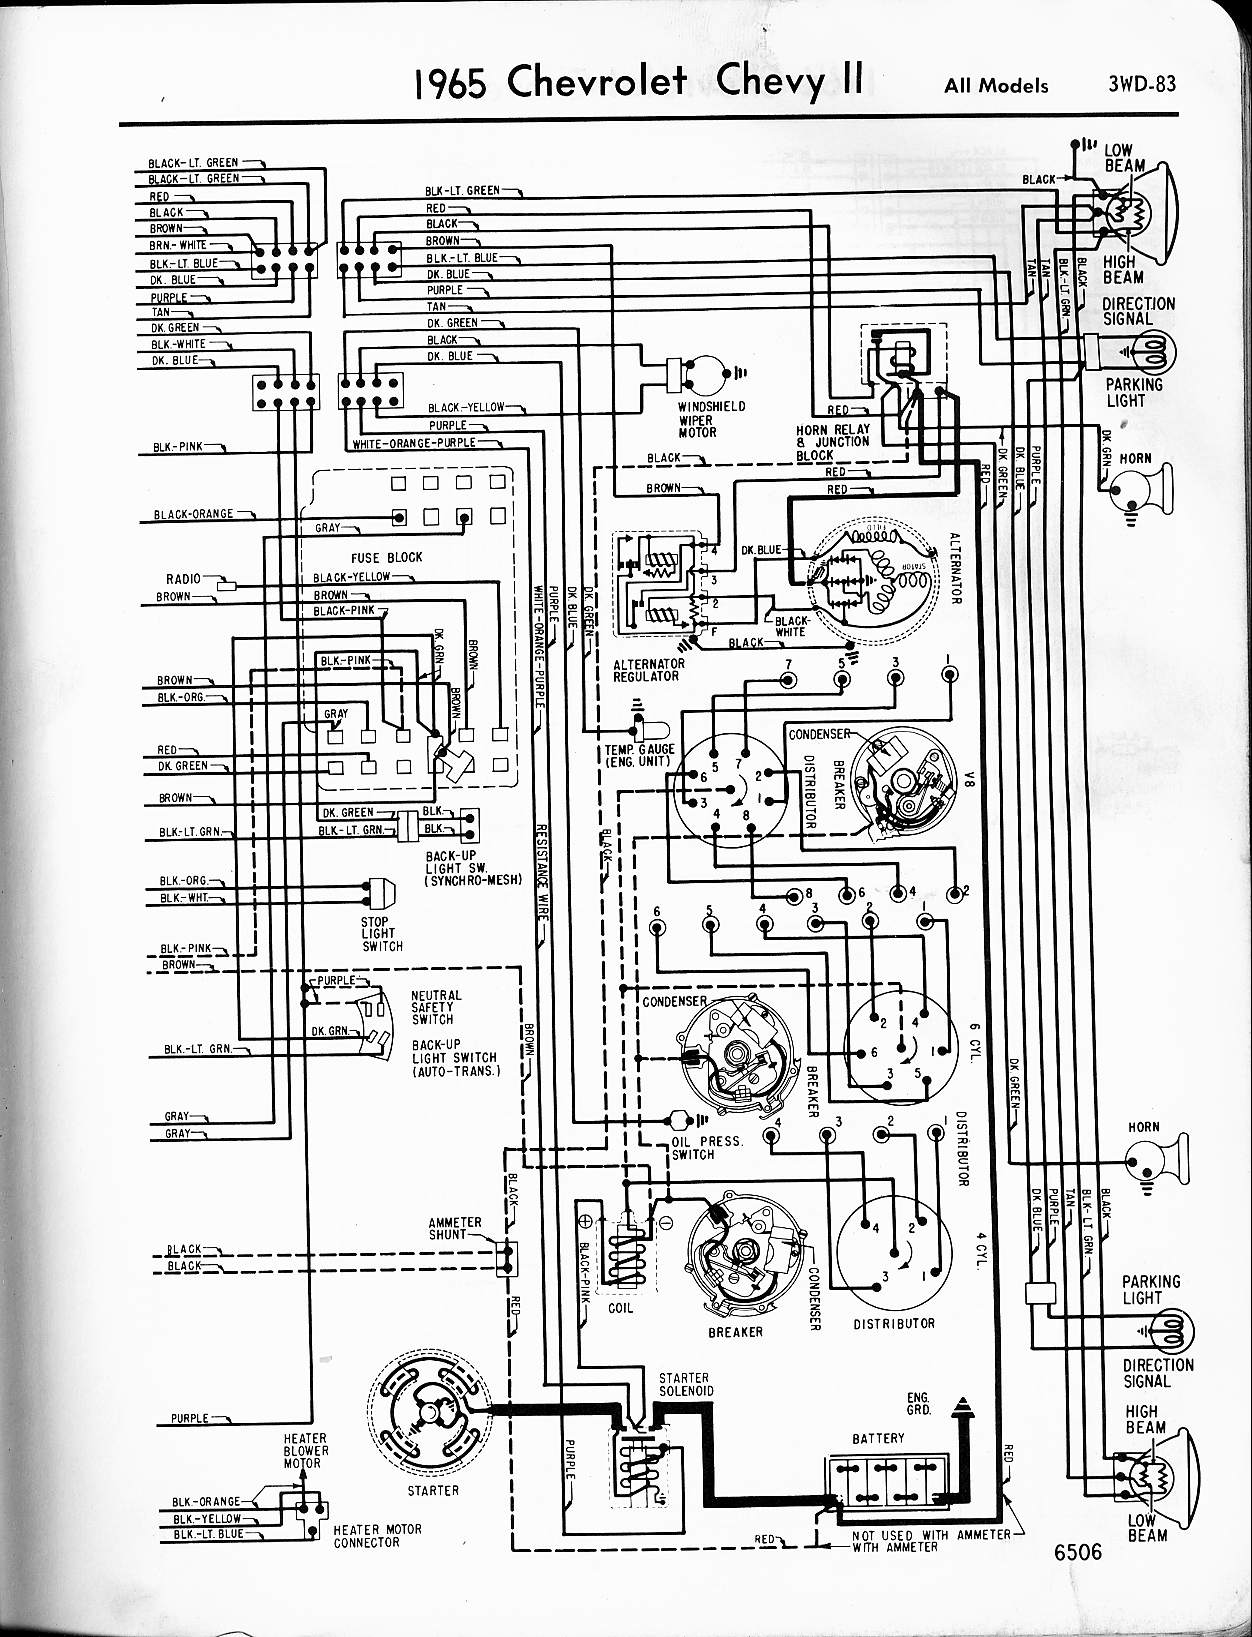 1978 El Camino Turn Signal Wiring Diagram - House Wiring Diagram ...